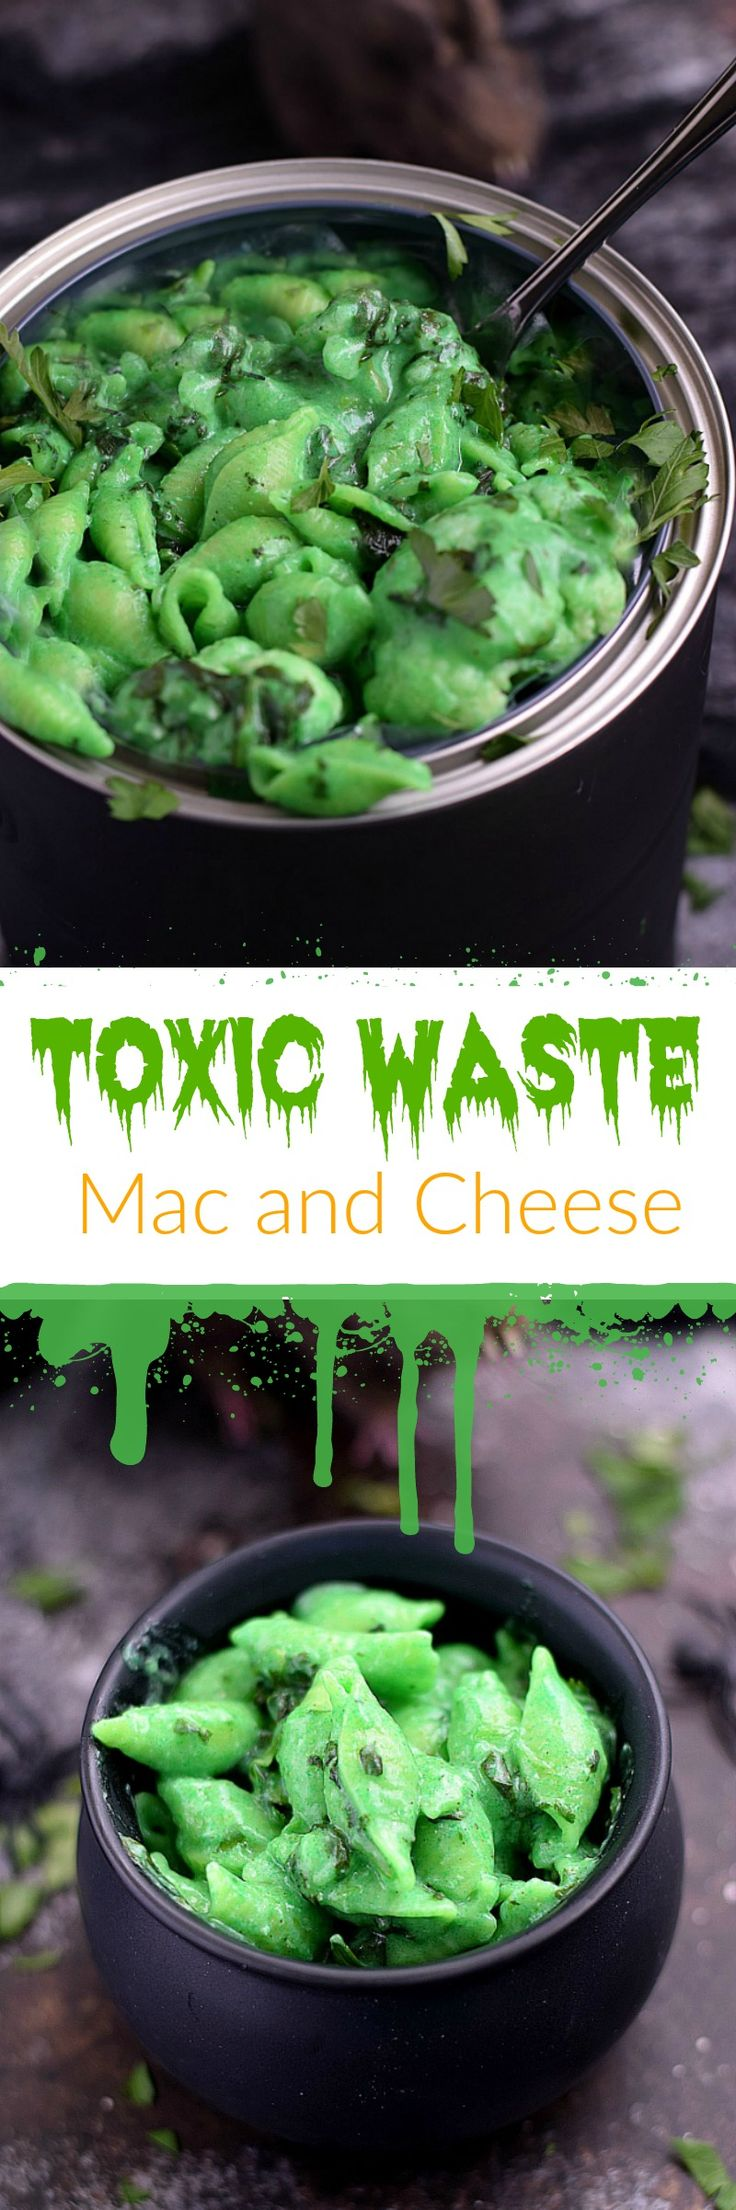 This Toxic Waste Mac and Cheese is disgustingly delicious and actually quite healthy. It's perfect for Halloween and the kids won't mind eating it | cookingwithcurls.com